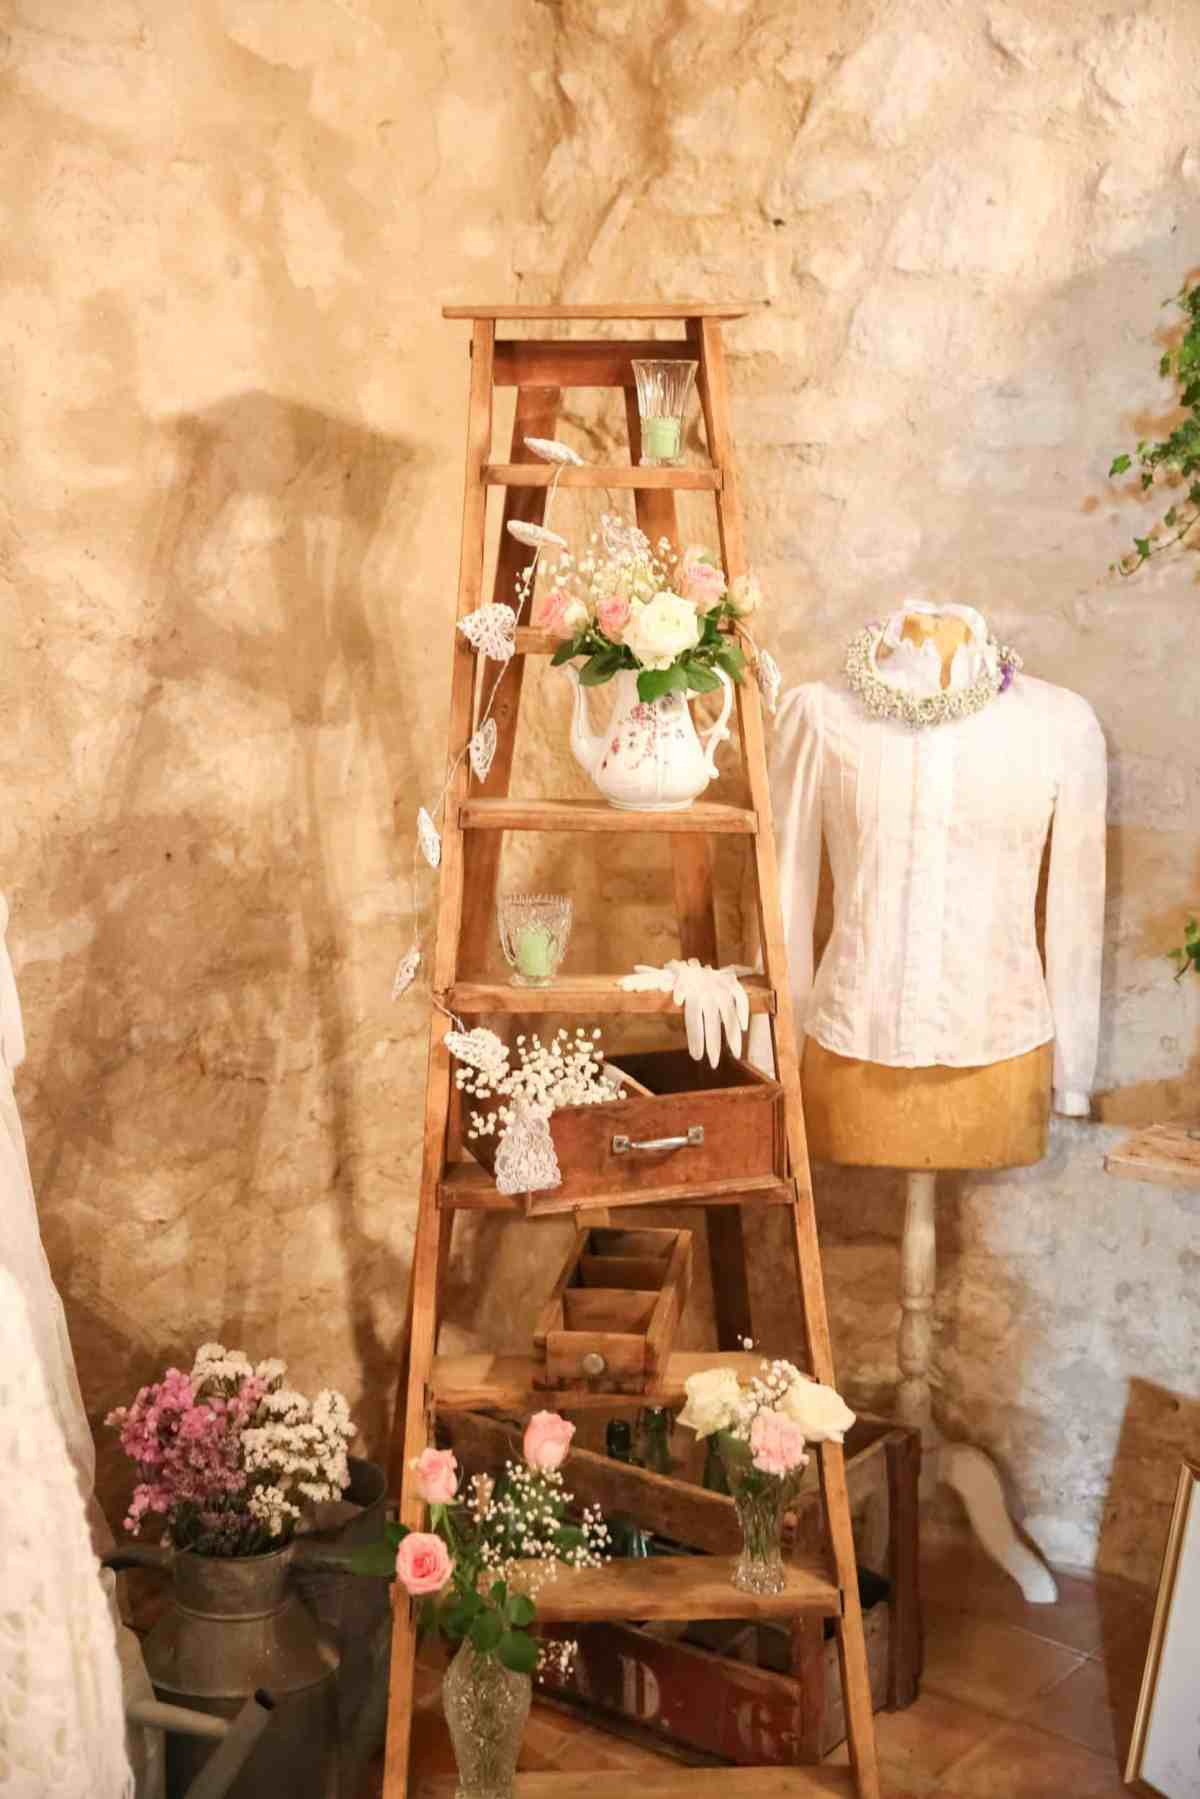 Deco mariage boheme vintage My Green Event